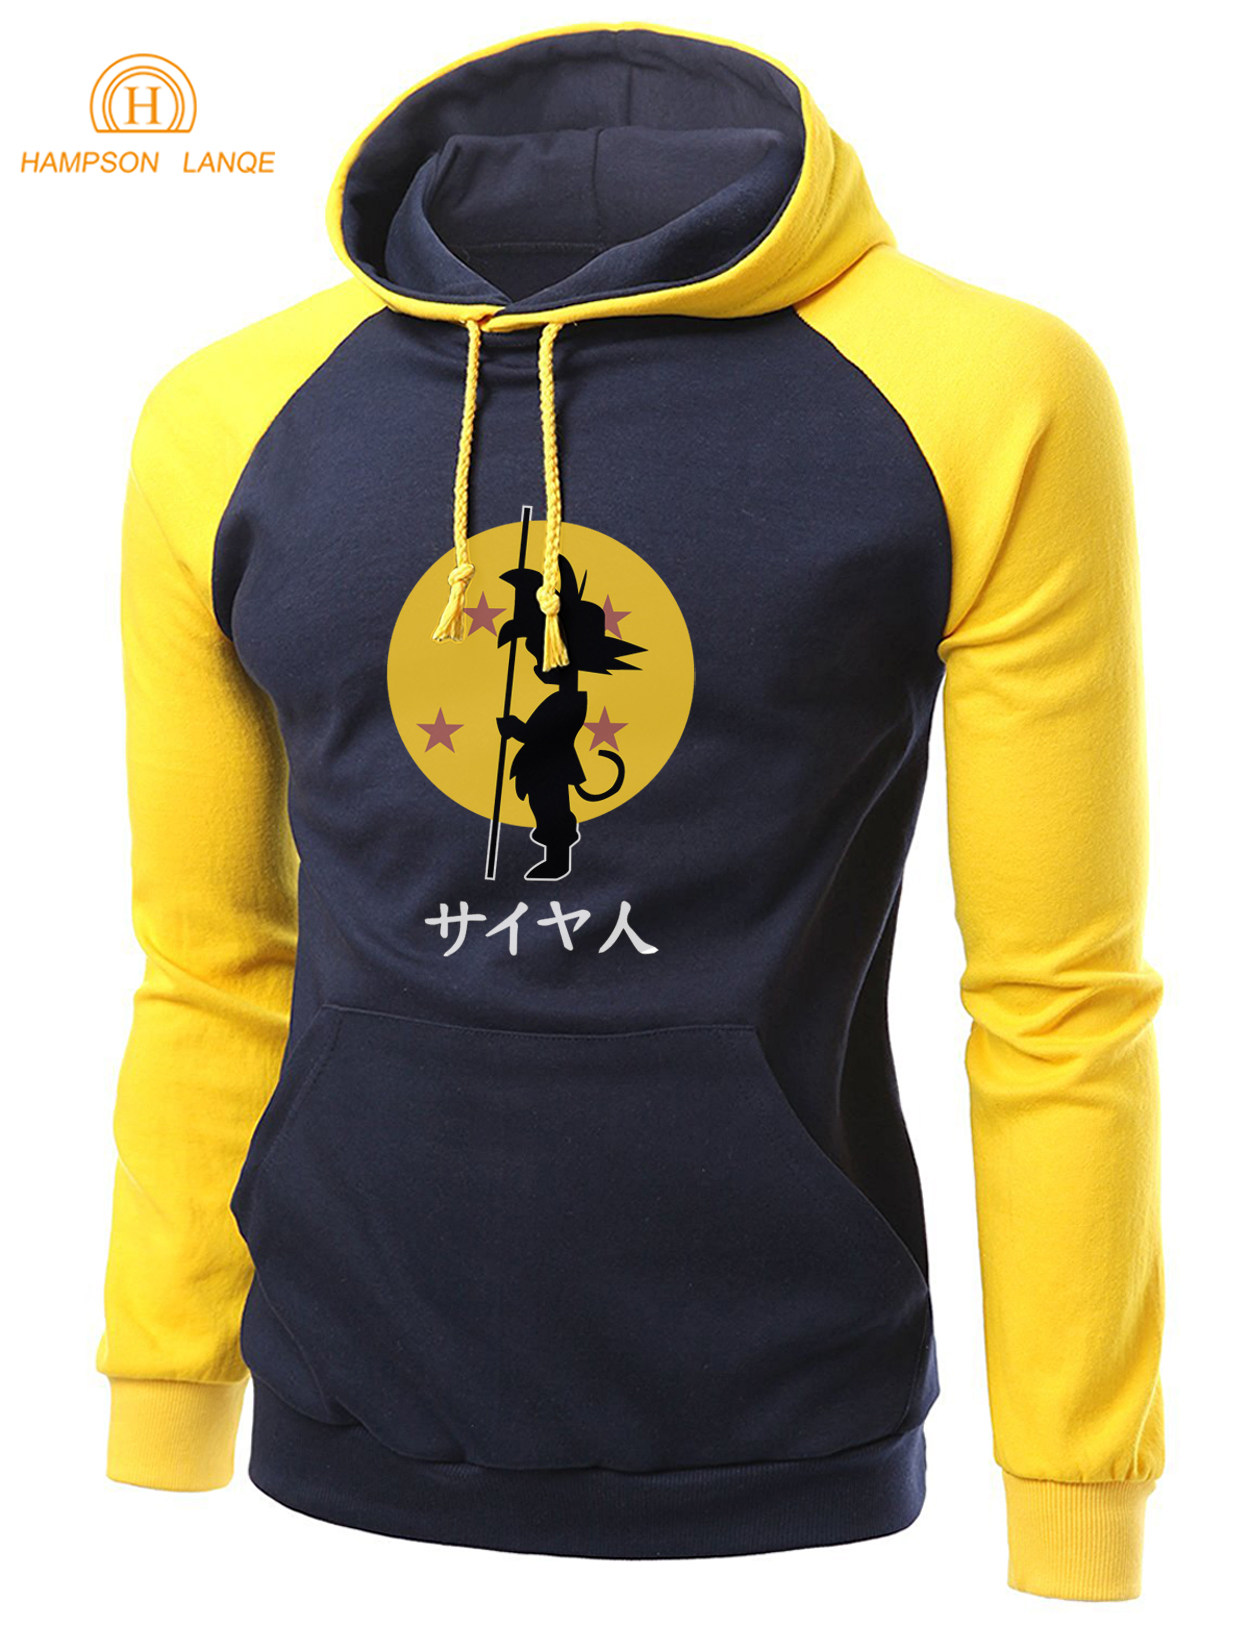 Japan Anime Dragon Ball Z  Harajuku Raglan Hoodies 2020 Autumn Winter   Warm Fleece Loose Fit SSweatshirt Men